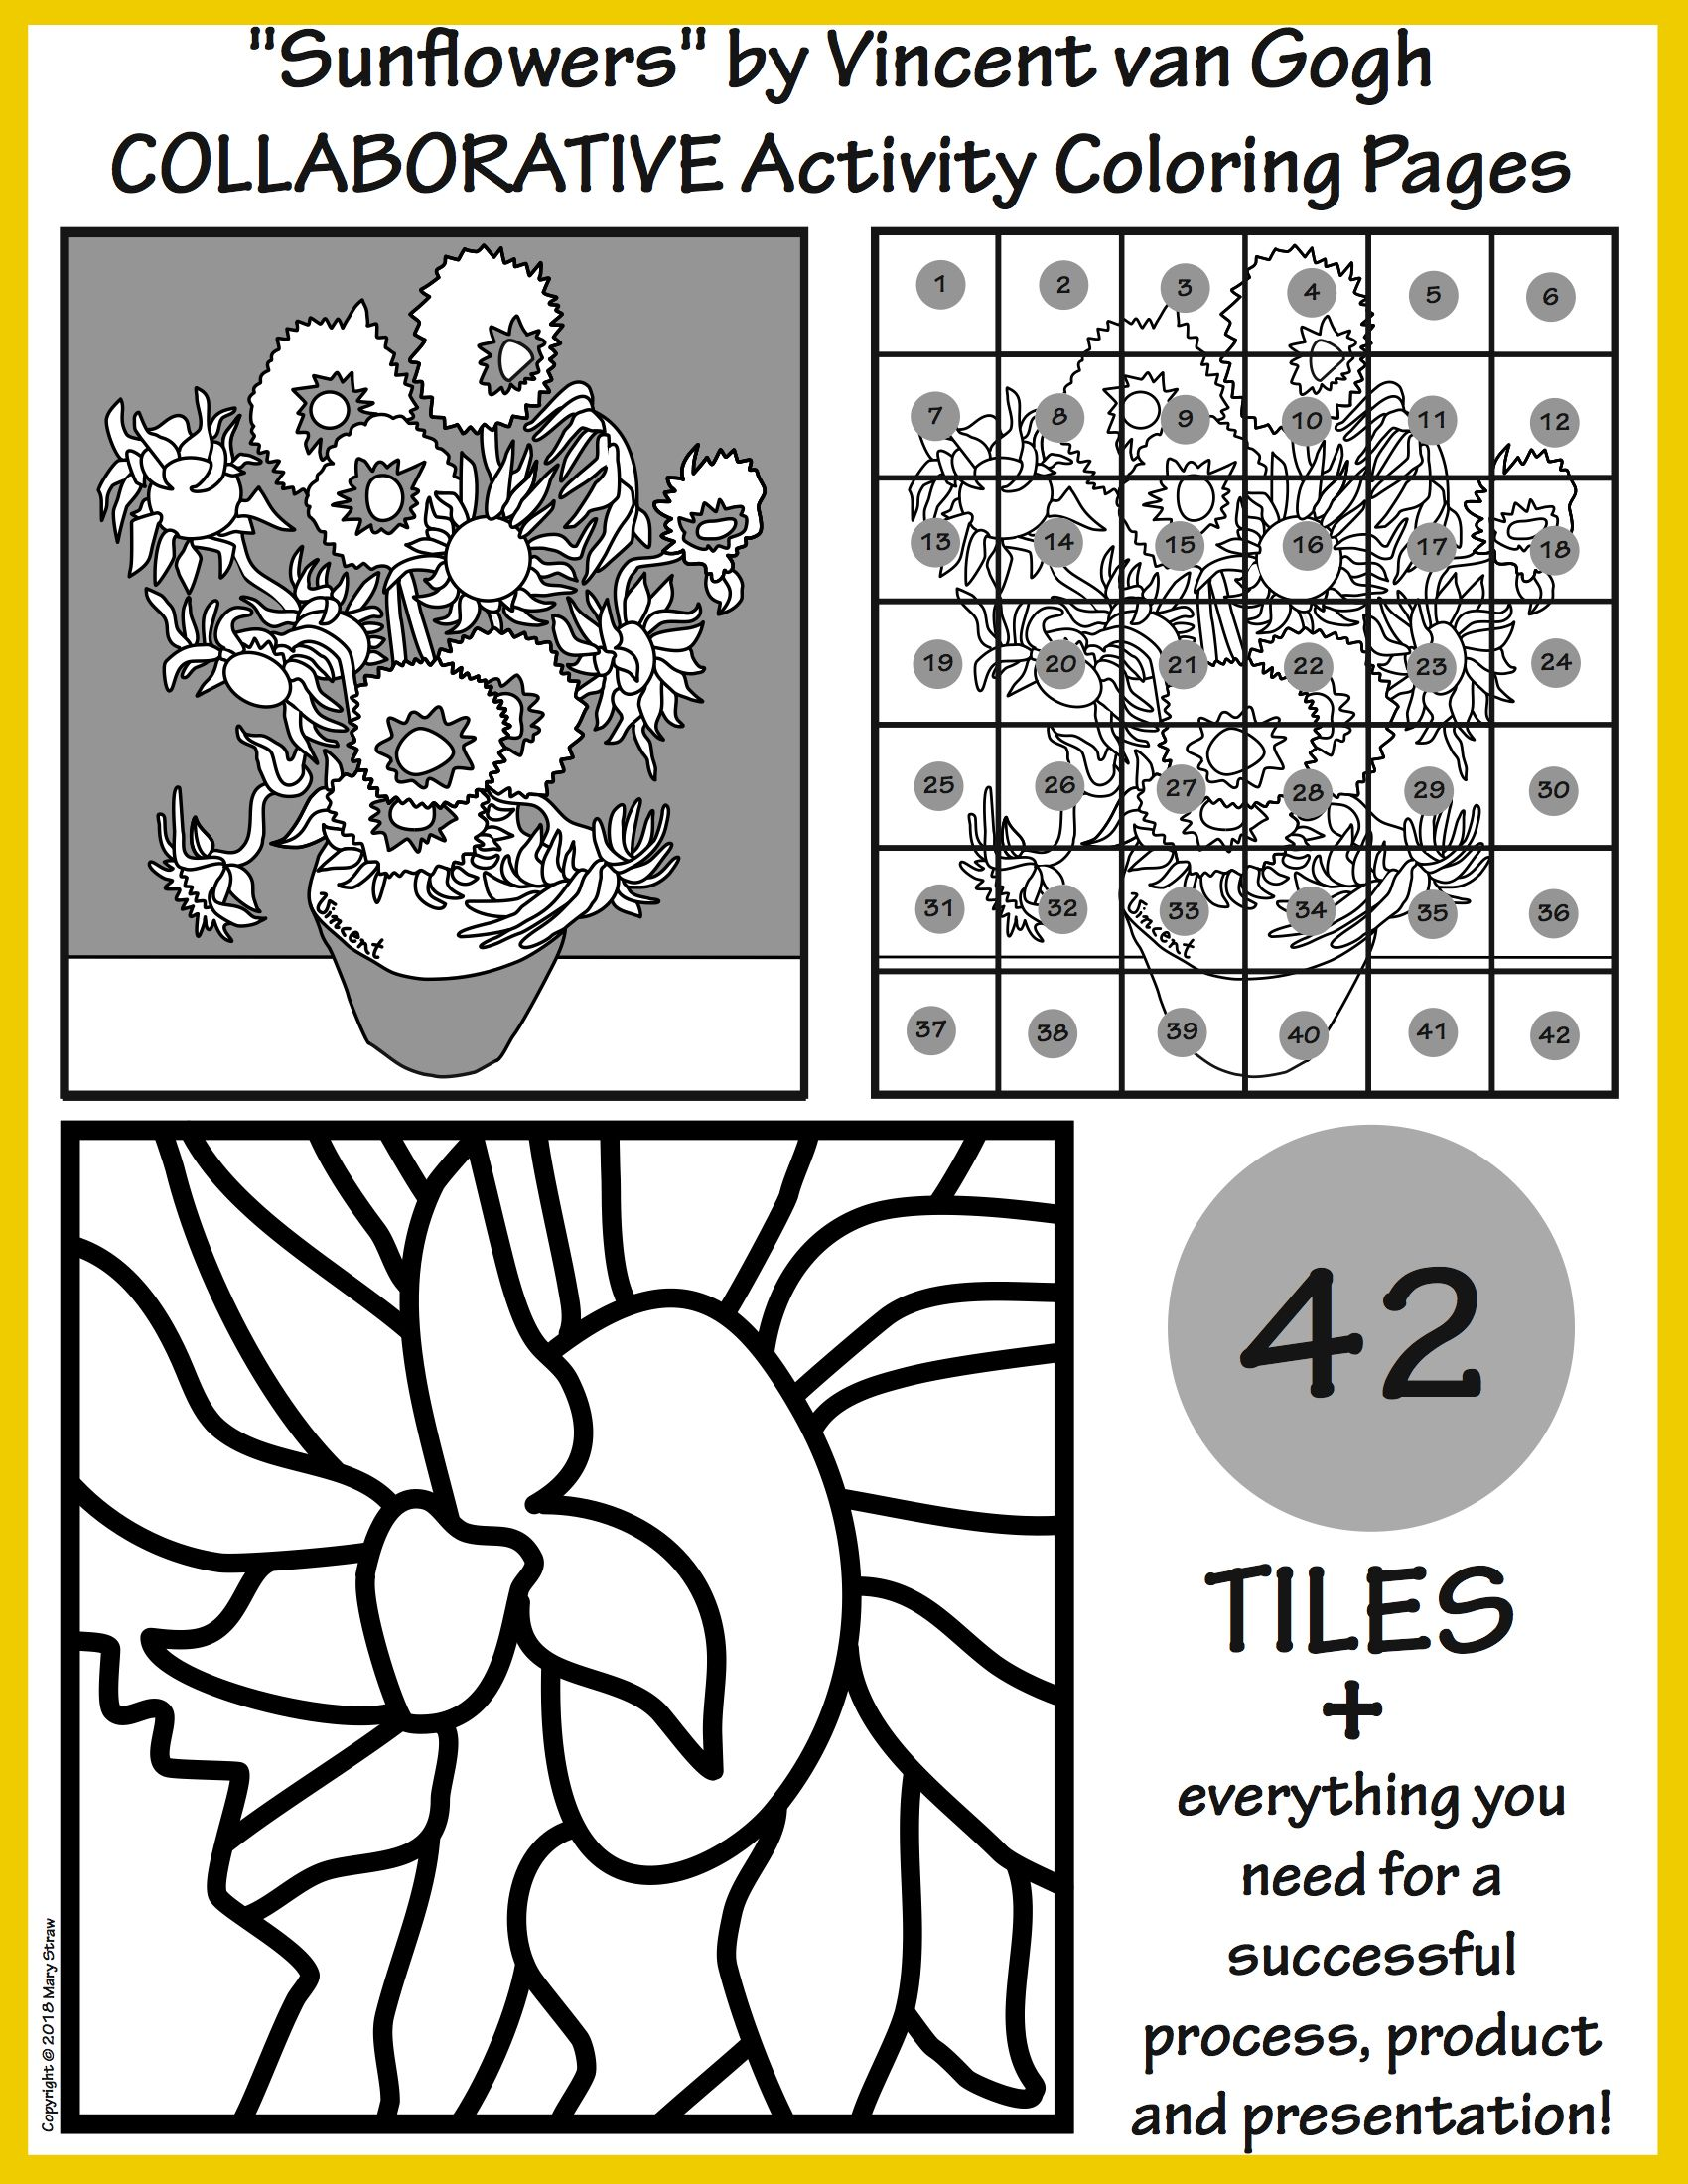 Sunflowers By Van Gogh Collaborative Activity Coloring